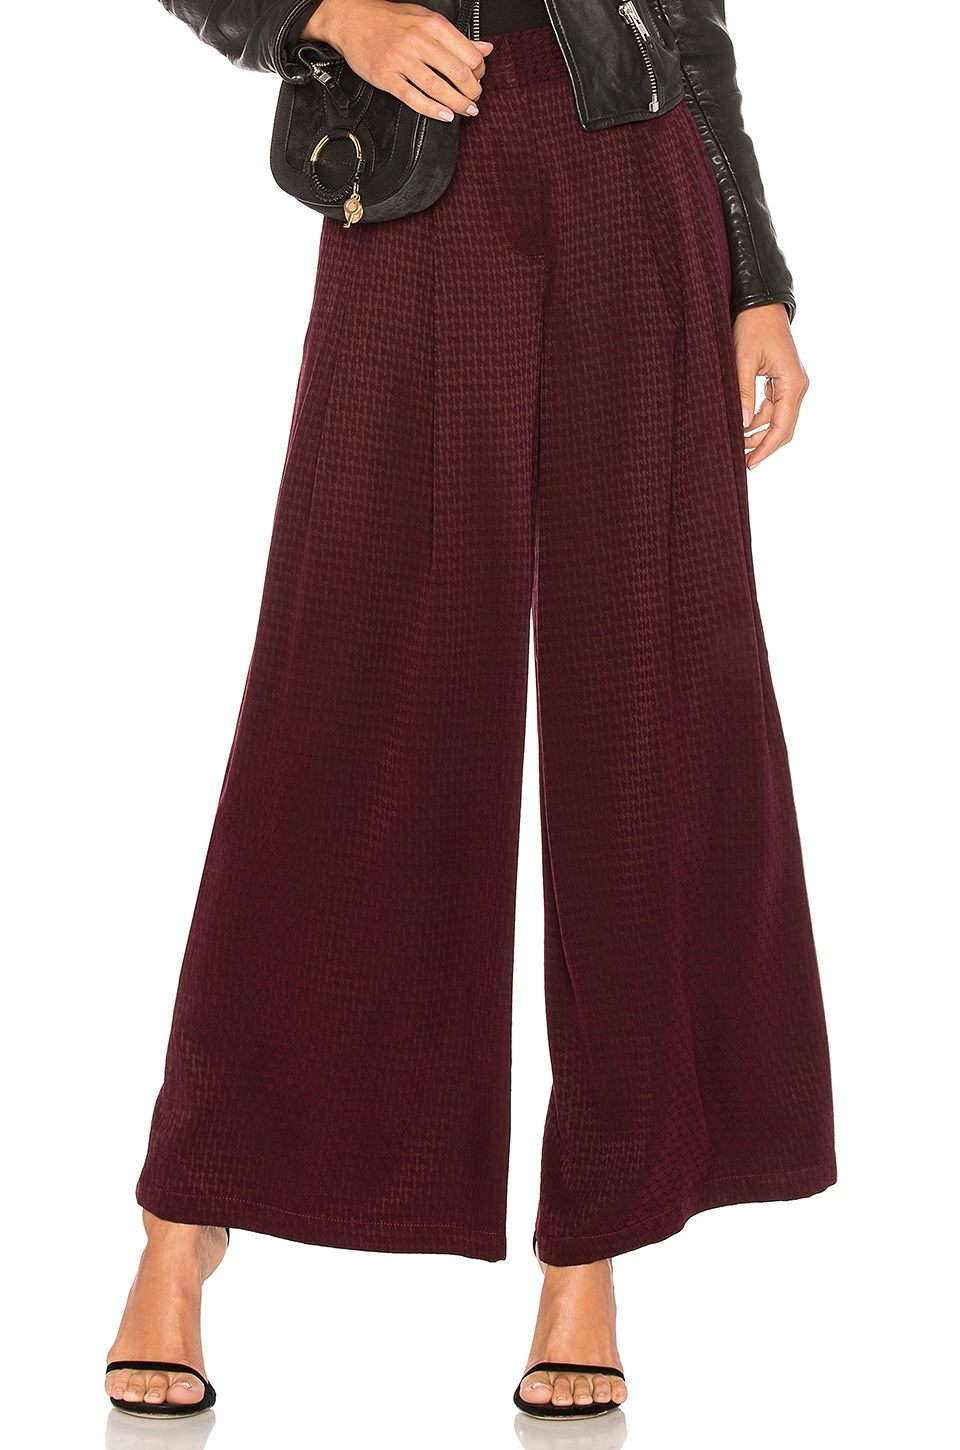 Free People Wide Leg Pant in Wine